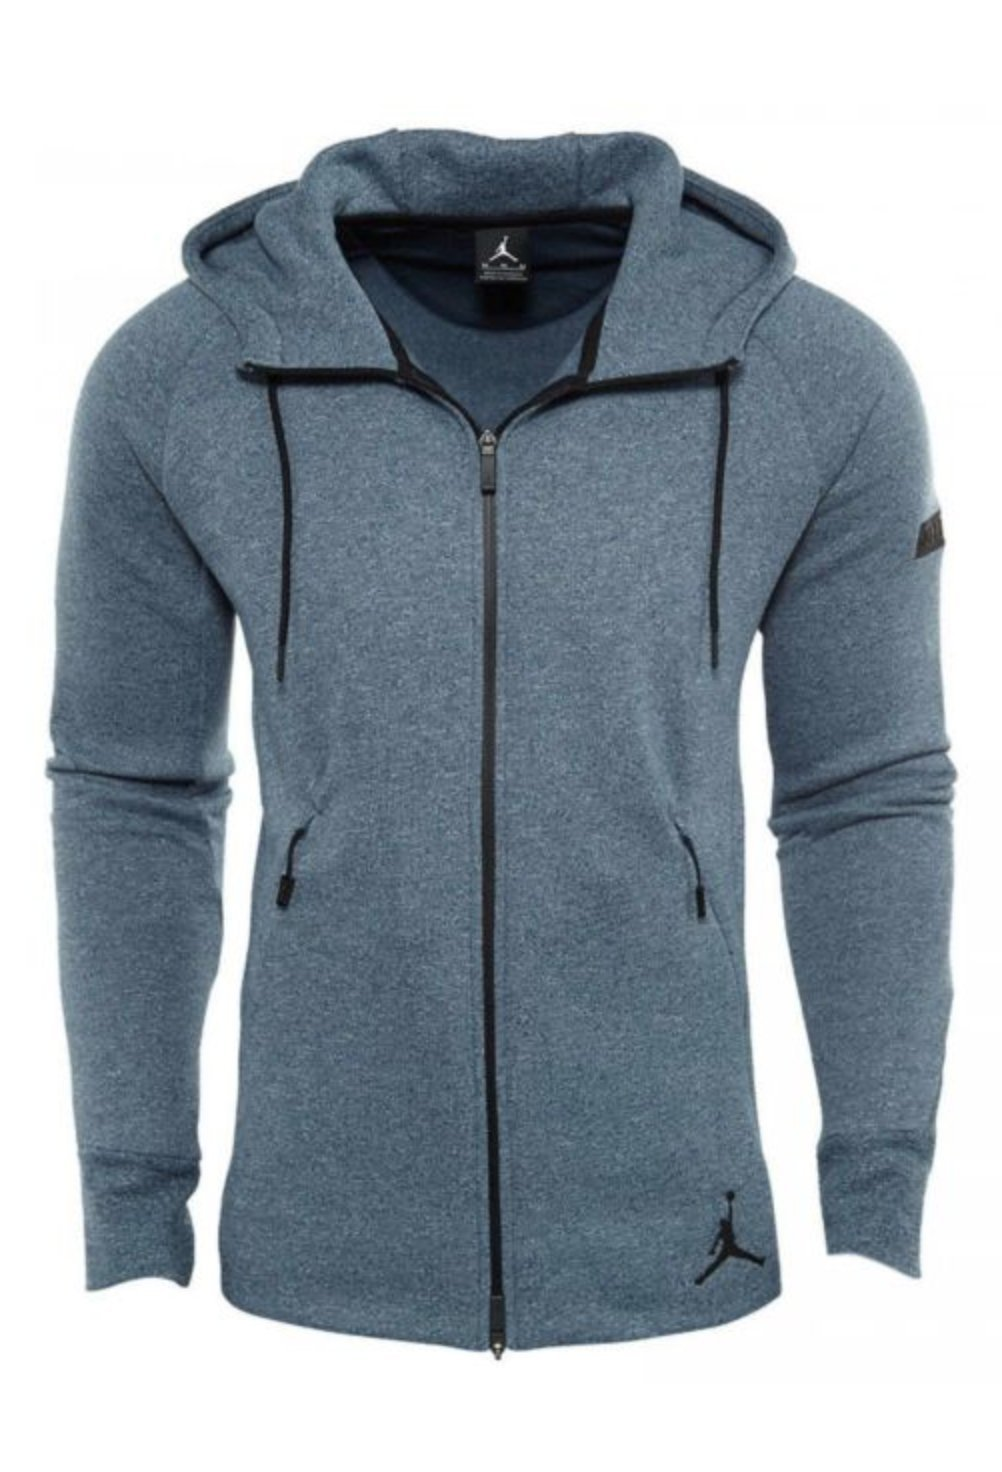 Nike Air Jordan Tech Fleece Performance Full Zip Hoody Sweatshirt (XL, Blue) by NIKE